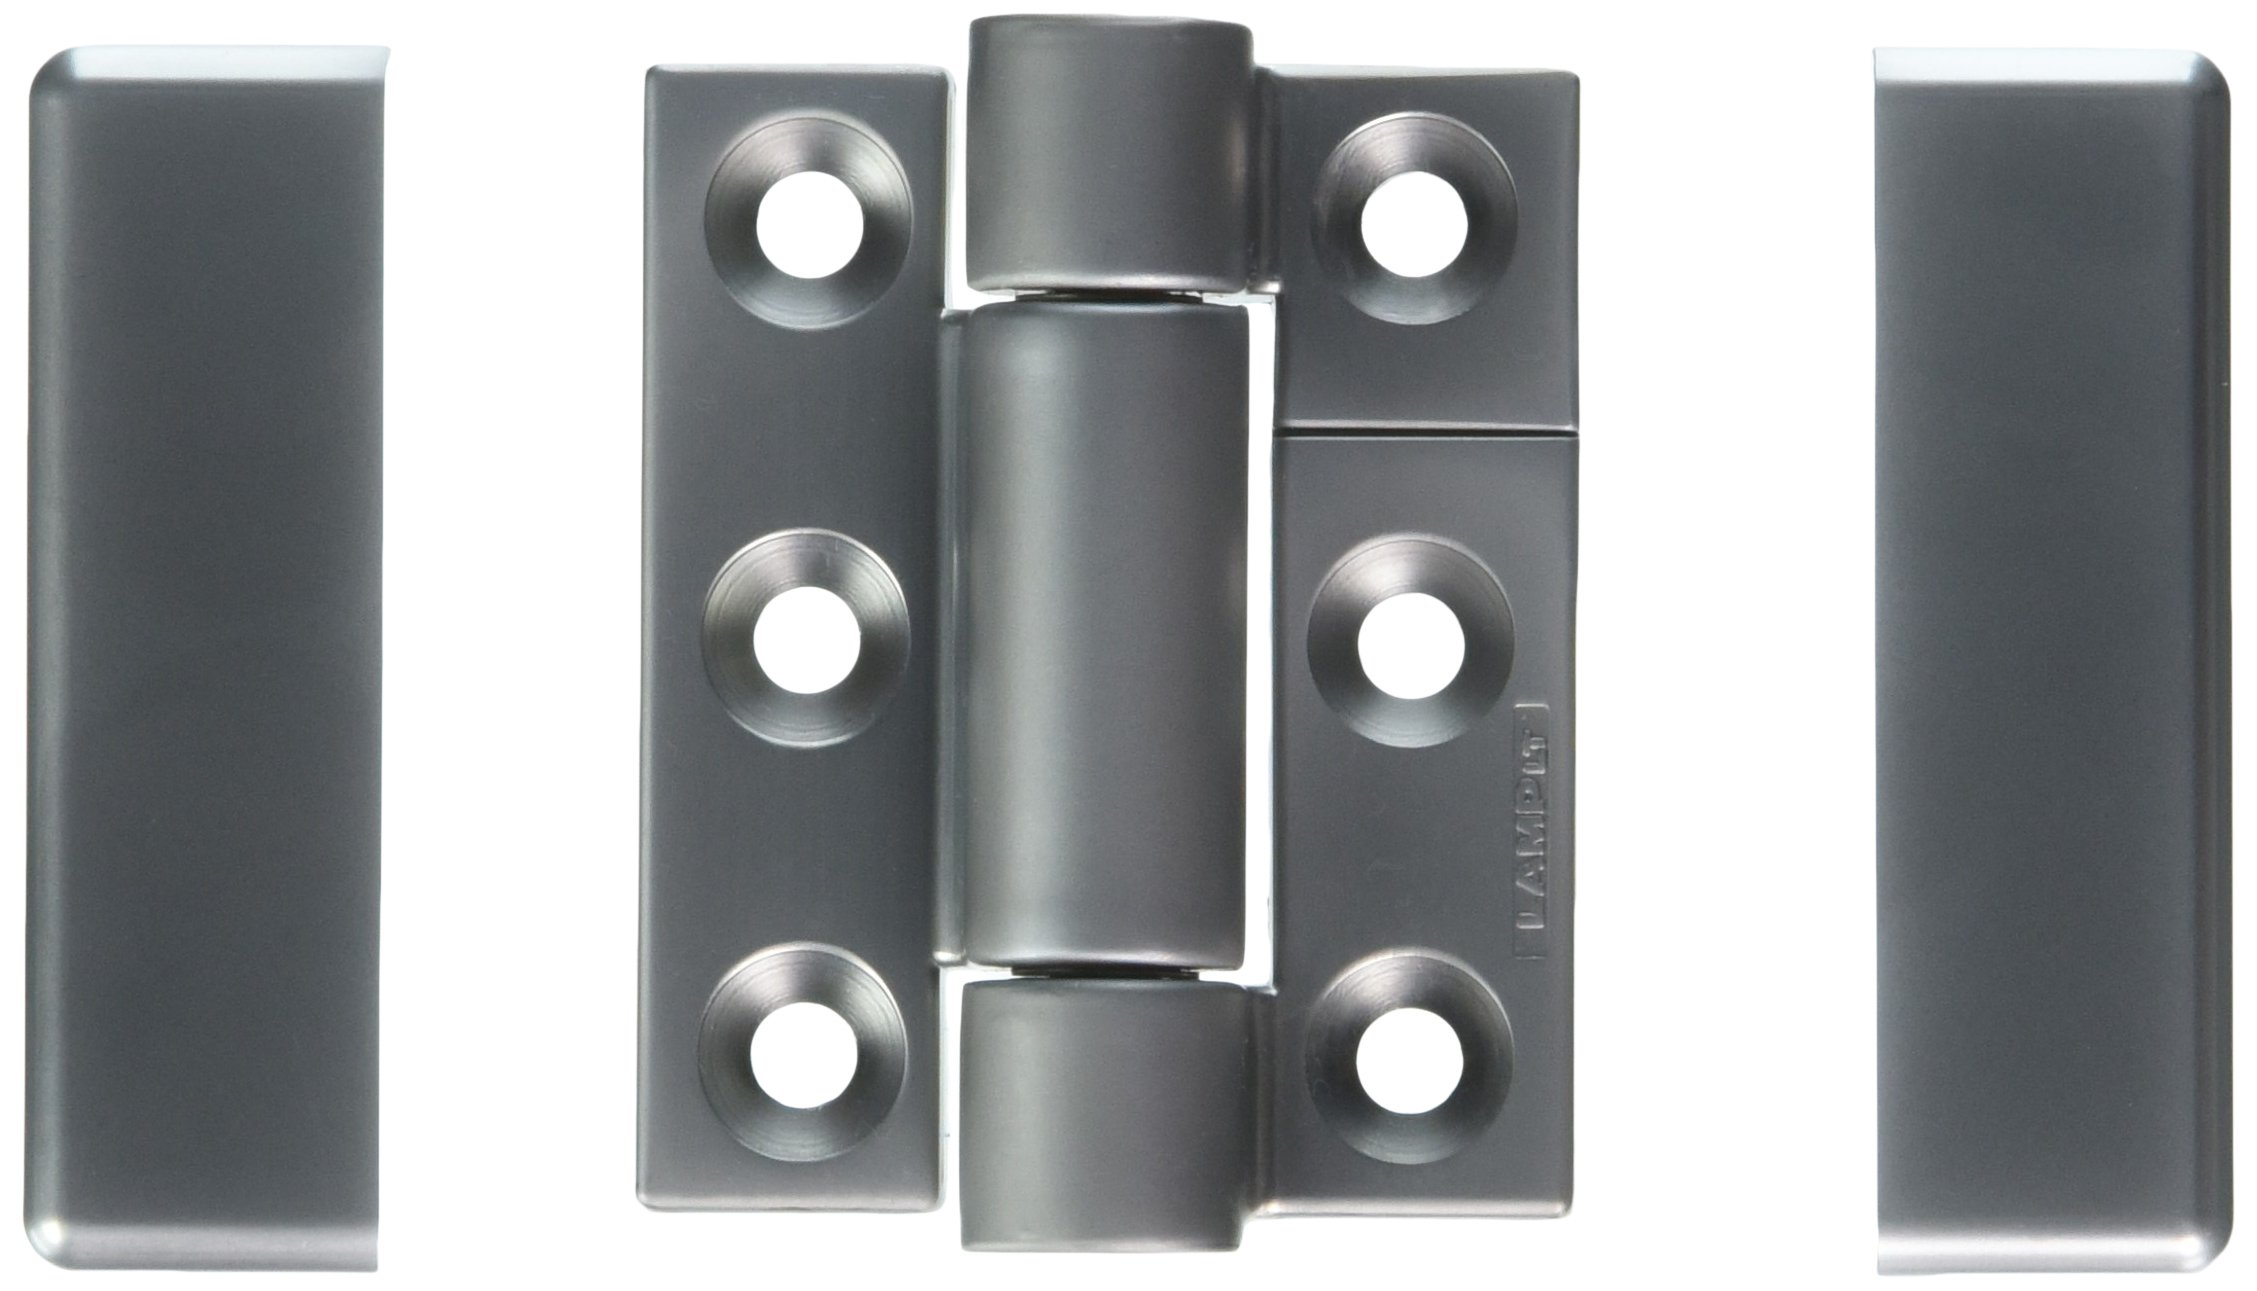 Sugatsune SK-T-ZA-2SCR Stainless Steel 304 Torque Hinge, Polished Finish, 5mm Leaf Thickness, 50mm Open Width, 15mm Pin Diameter, 65mm Height, 17 lbs inch Torque